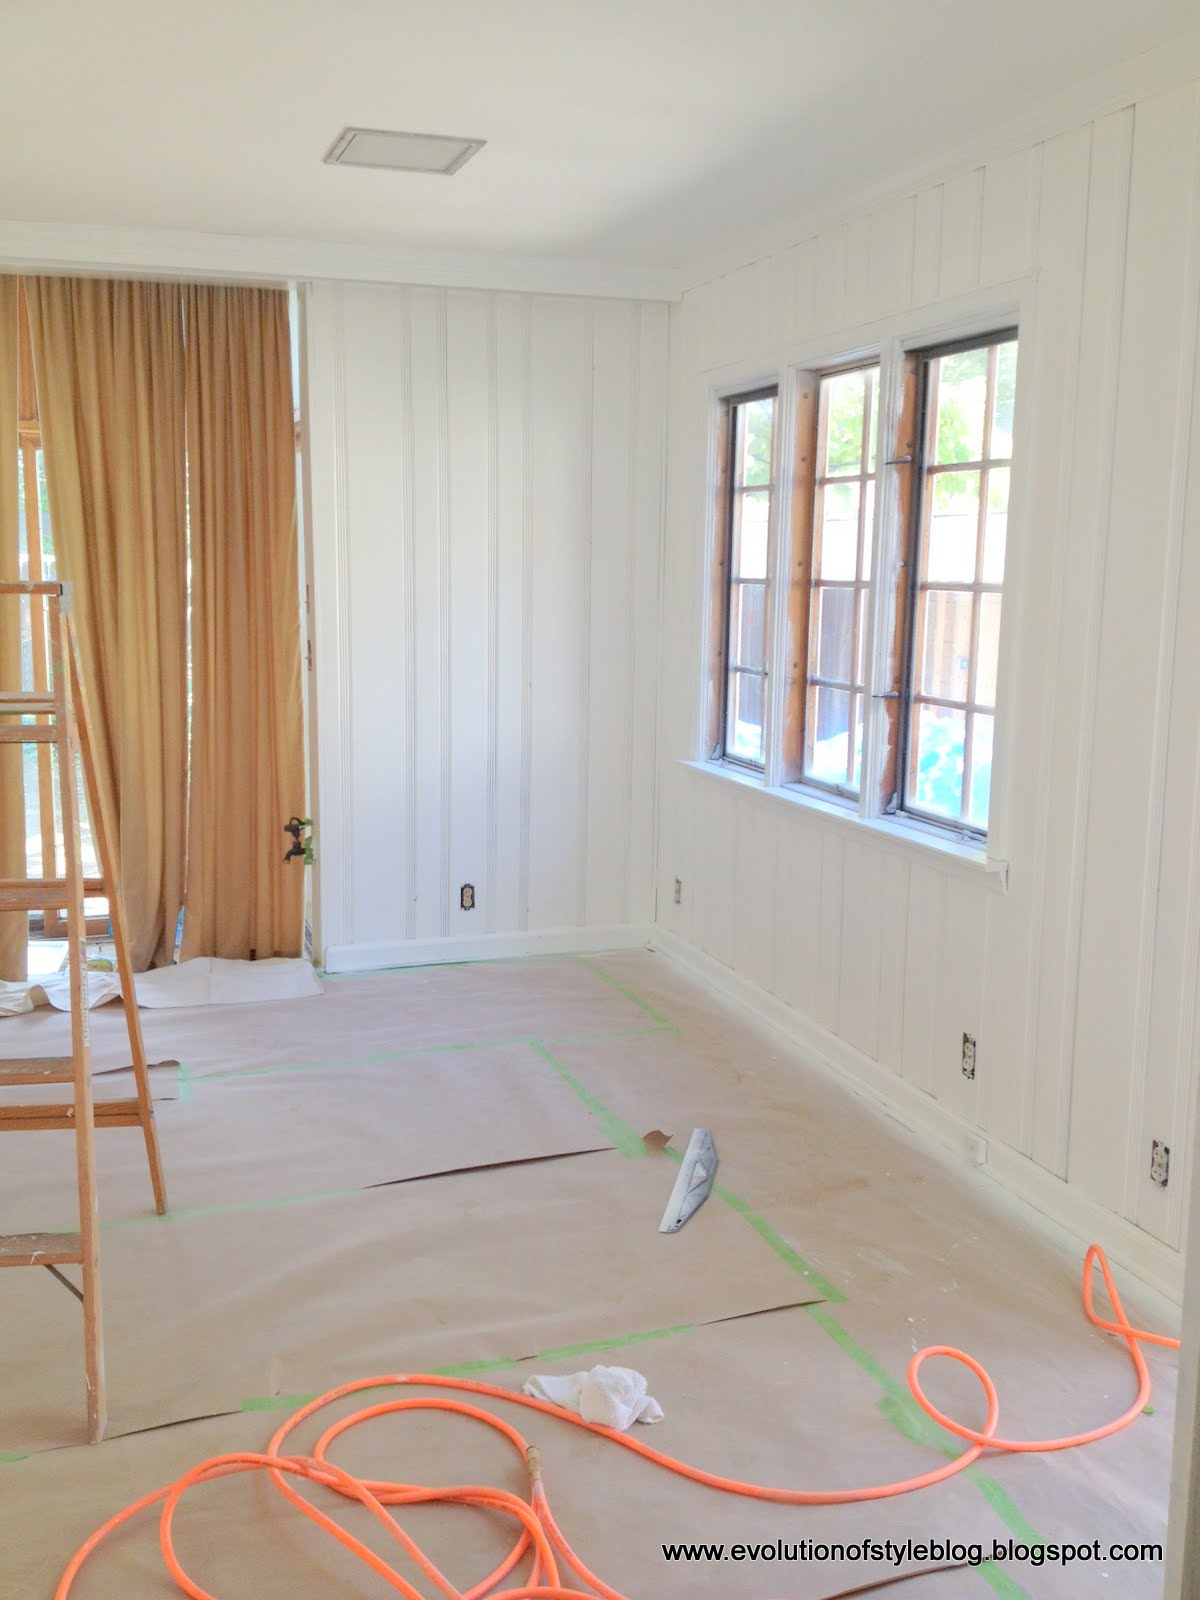 Oil Based Wall Paint Part - 47: On Top Of This, I Just Finished Redoing Some More Builder Grade Cabinets!  Theyu0027re Looking Fantastic U2013 I Canu0027t Wait To Share The Transformation, ...